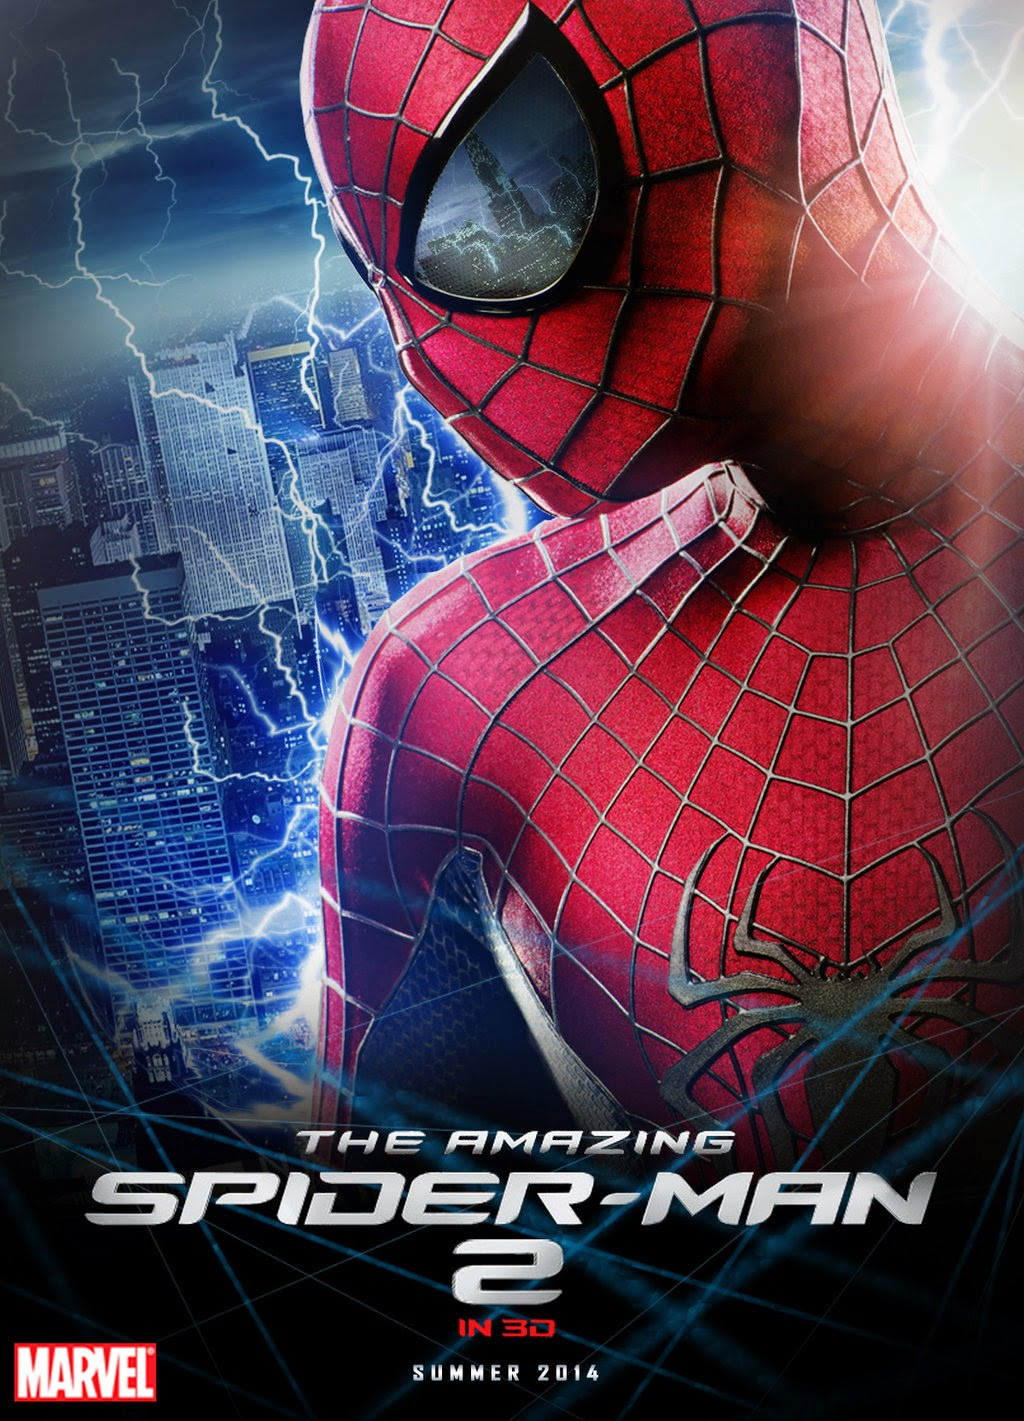 Watch the Director's cut of mega movie The Amazing Spiderman 2